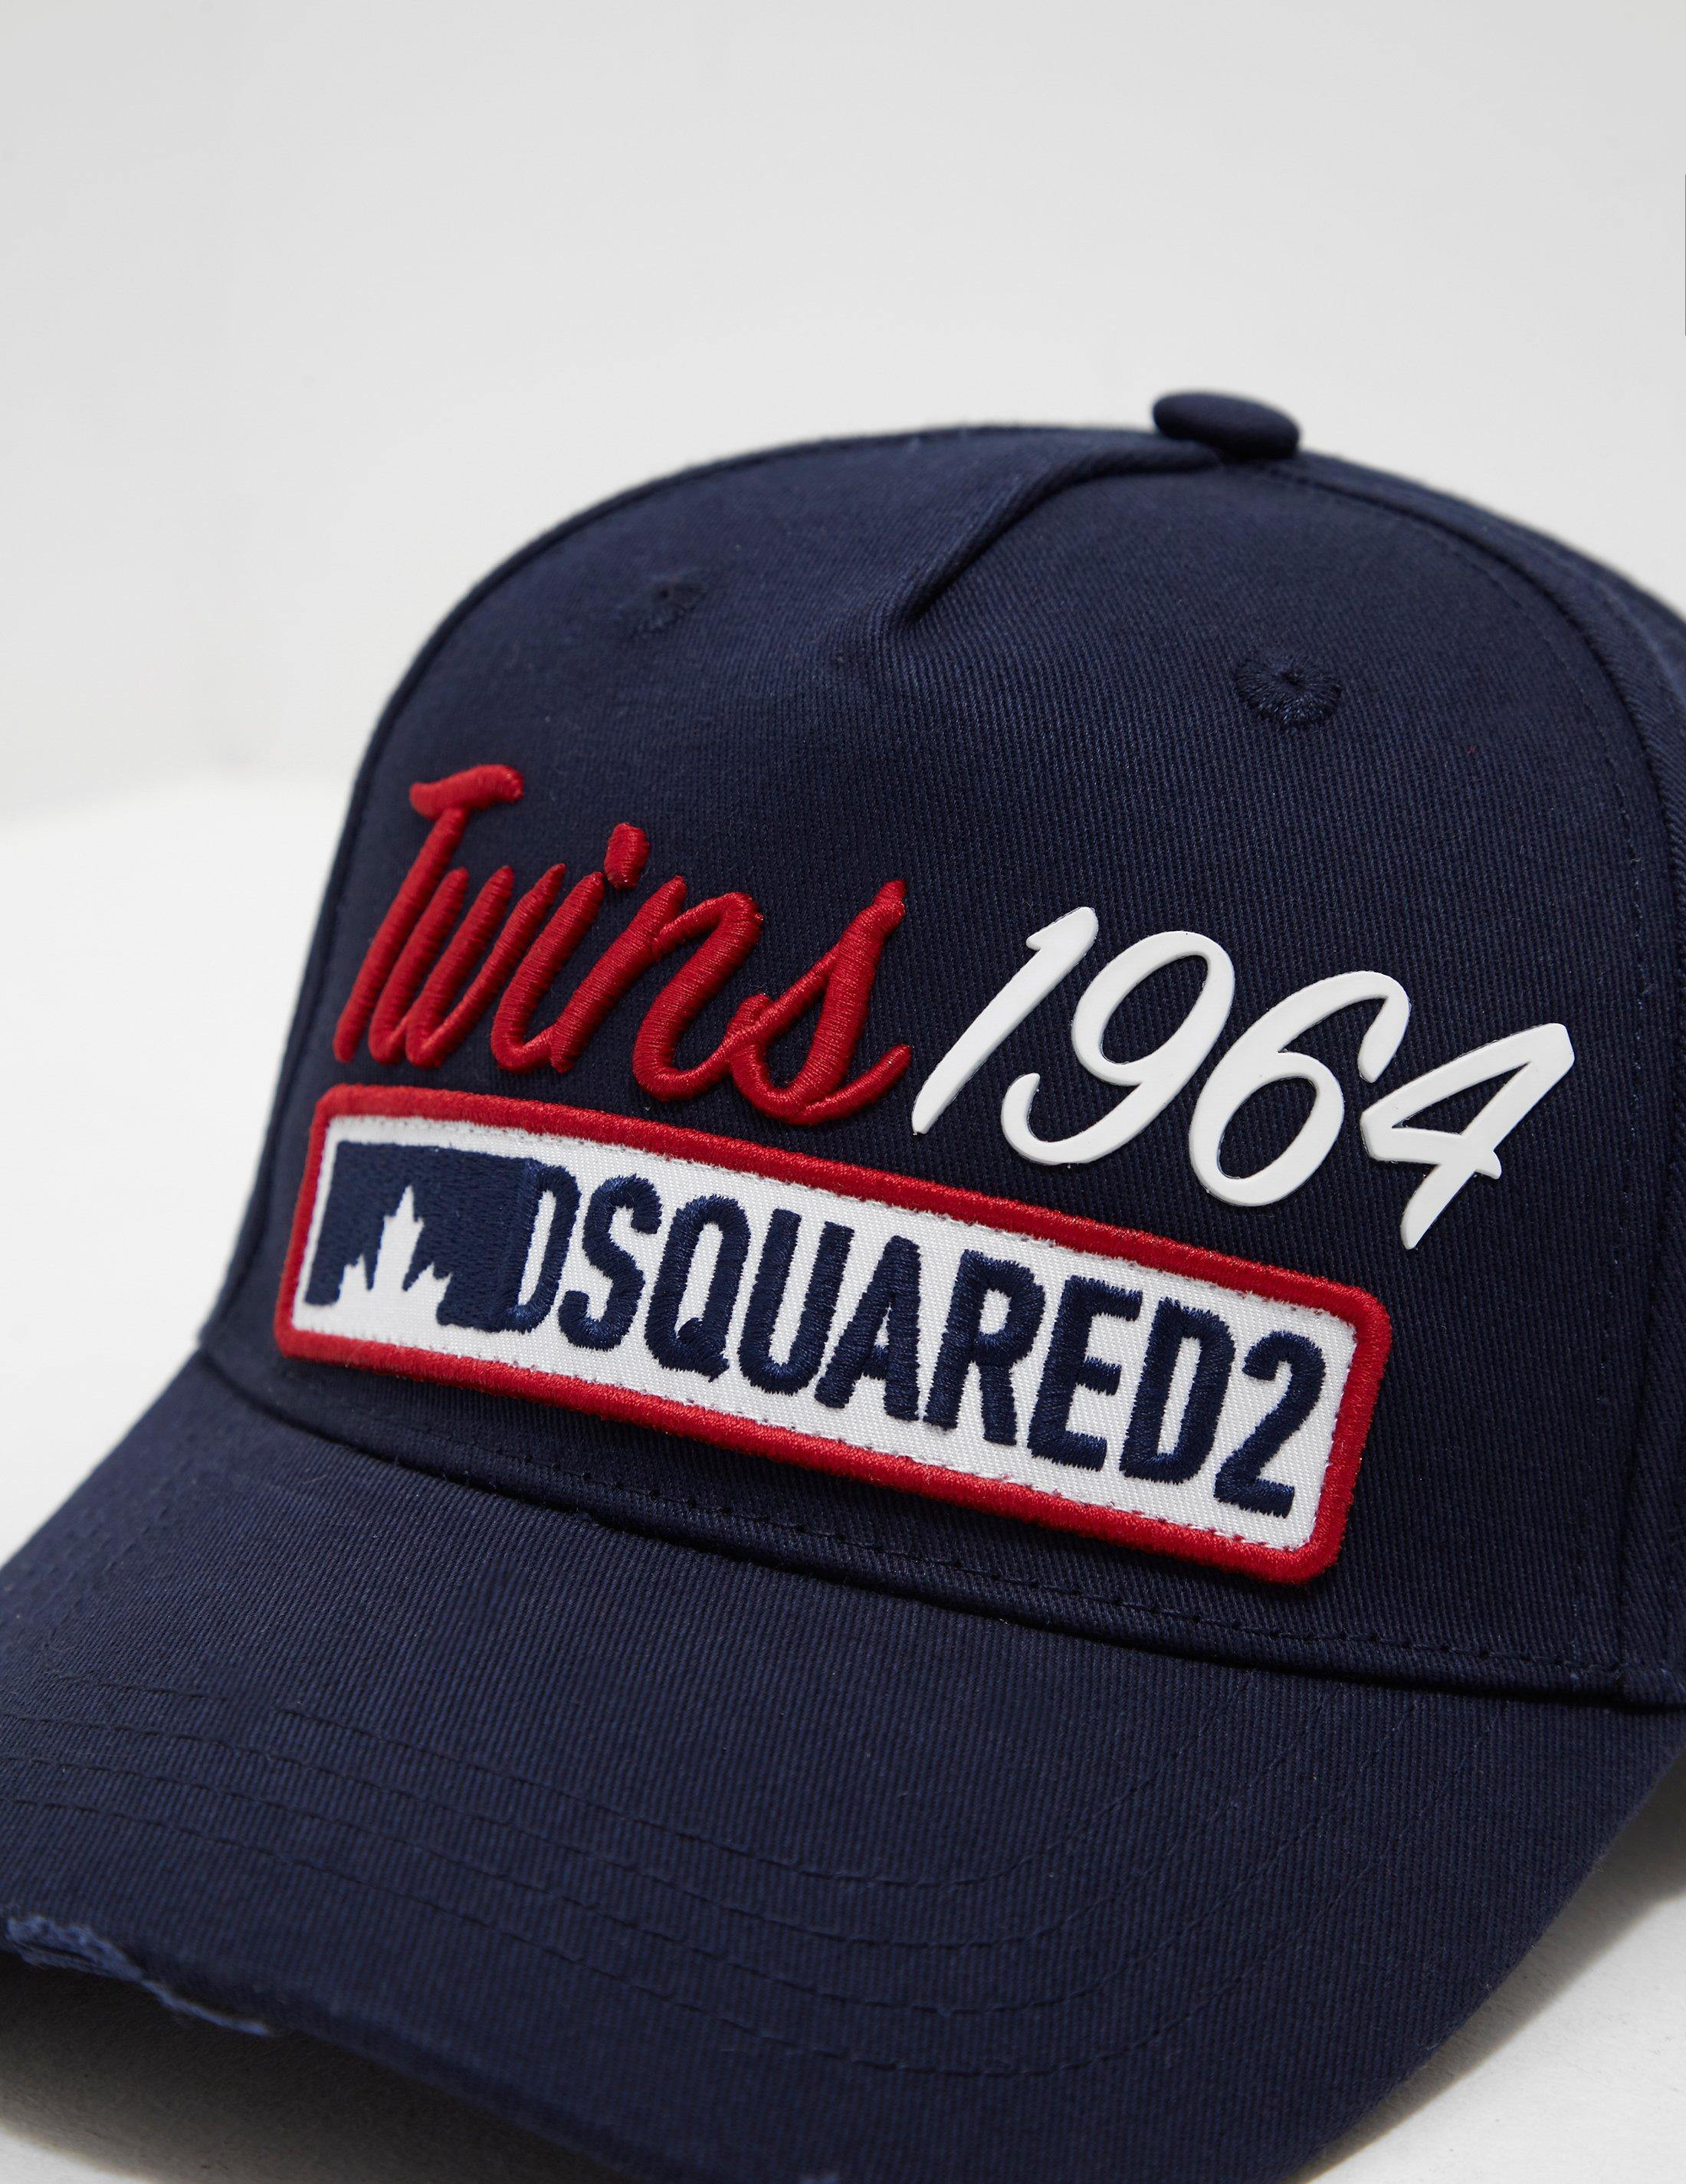 29d97ccd376 Lyst - DSquared² Mens Twins 1964 Cap Navy Blue in Blue for Men